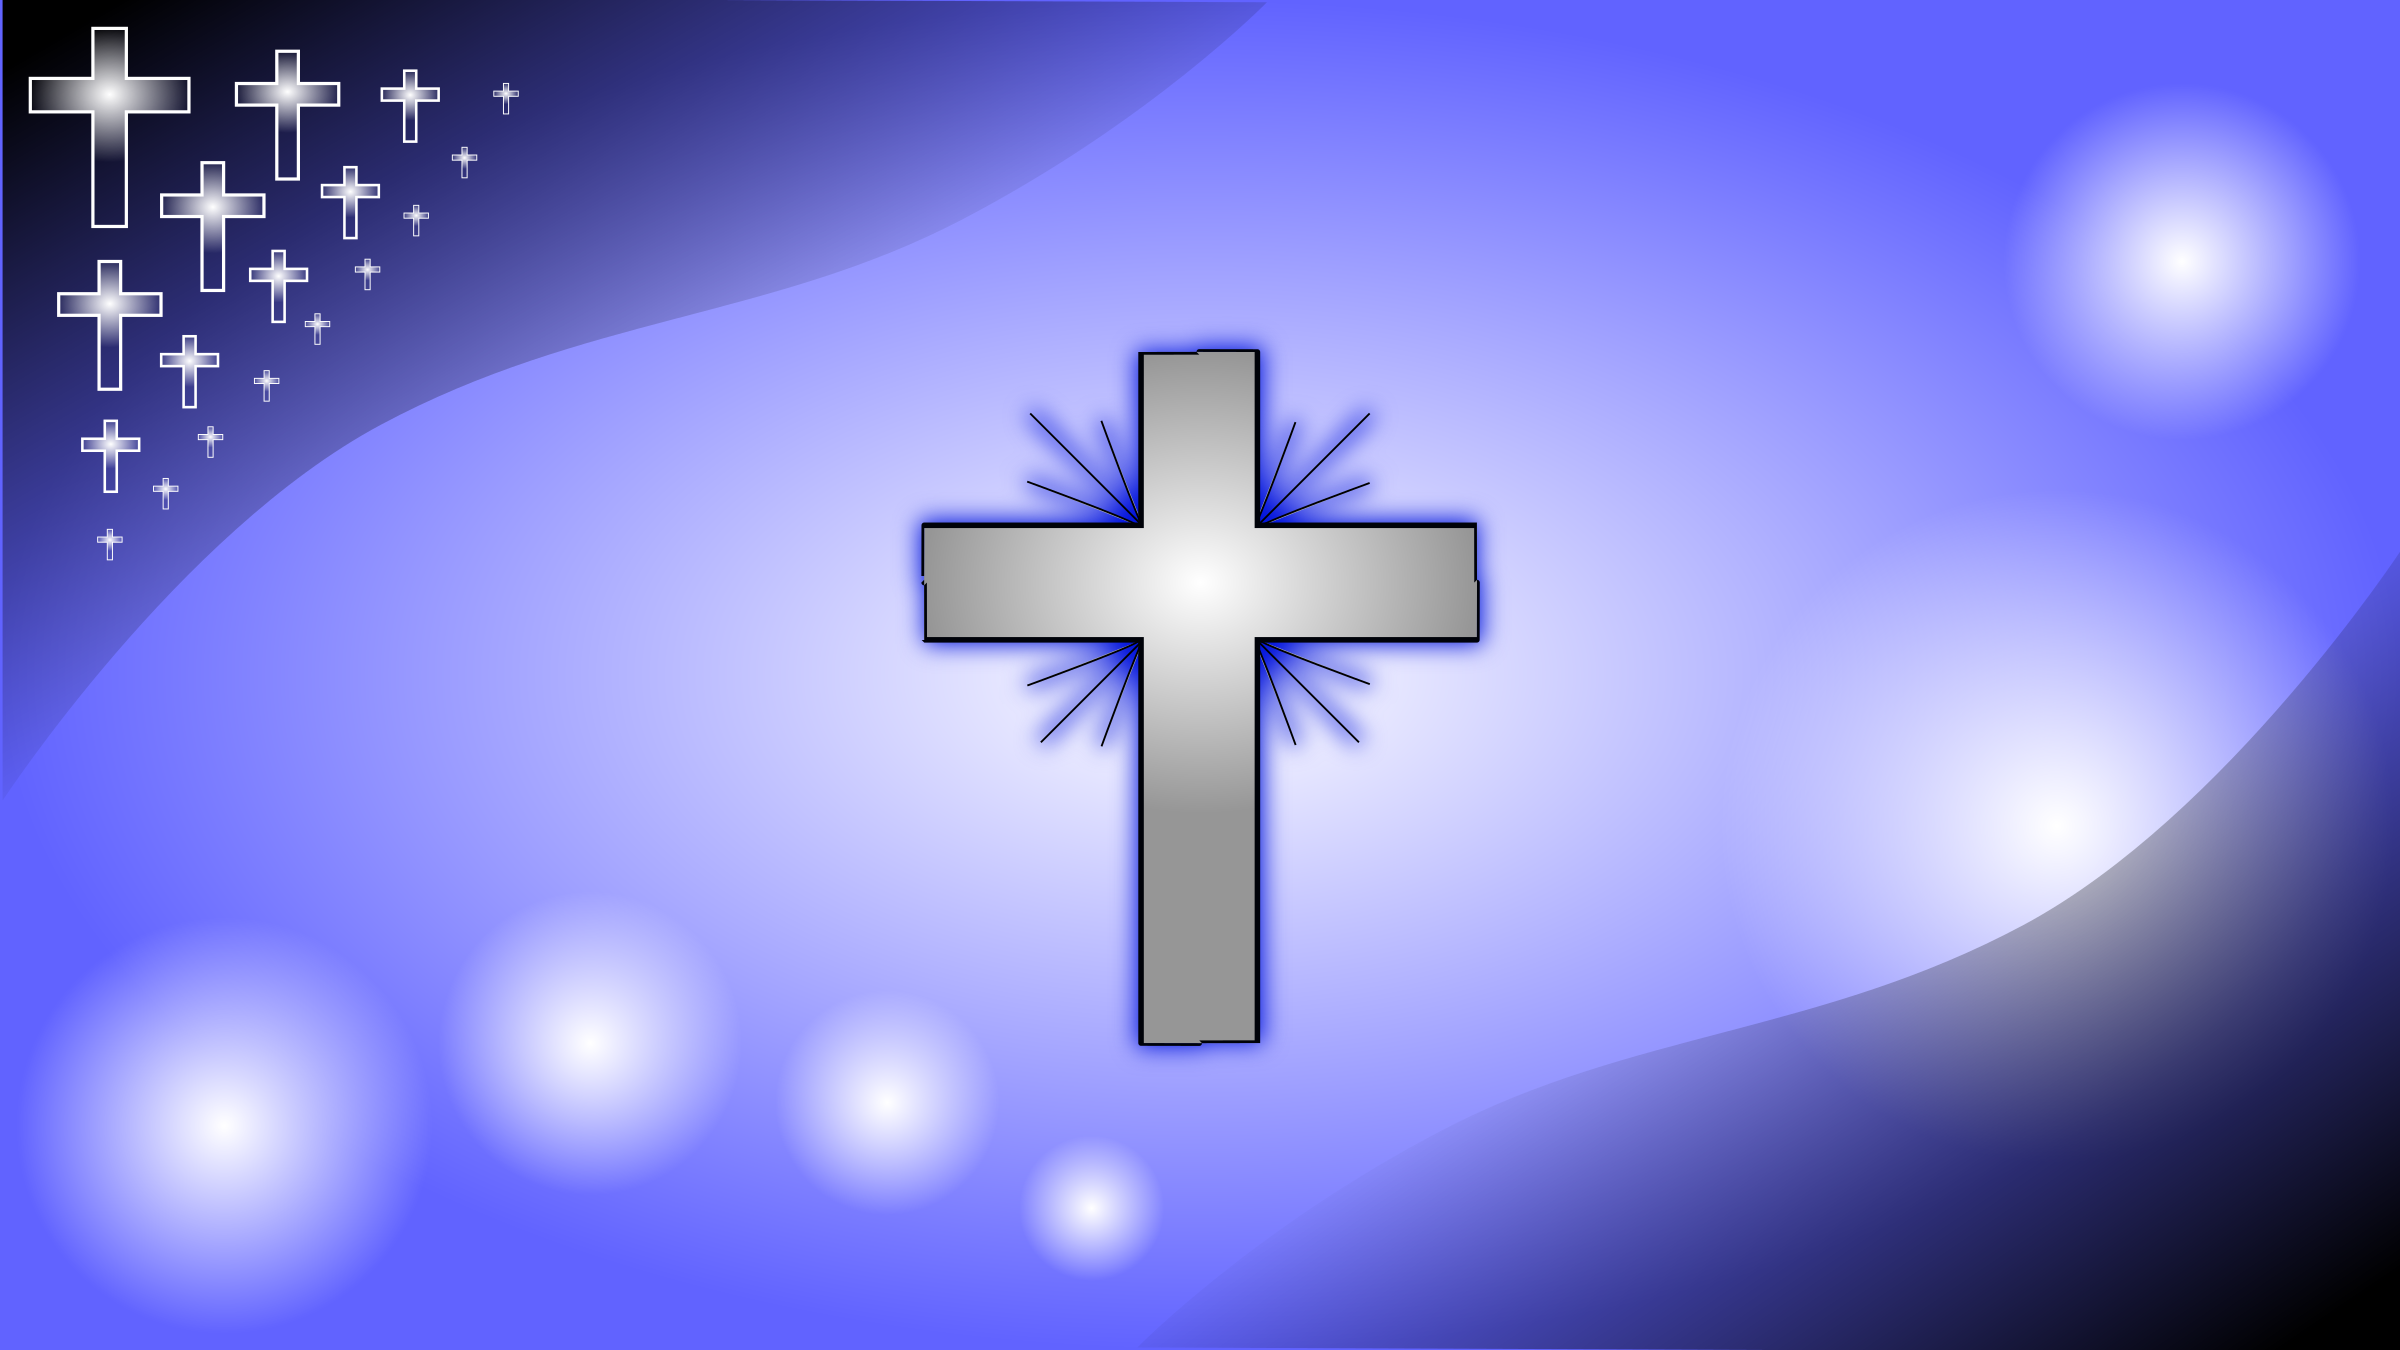 Iceblue-Glowing-Cross-Wallpaper-HD-background